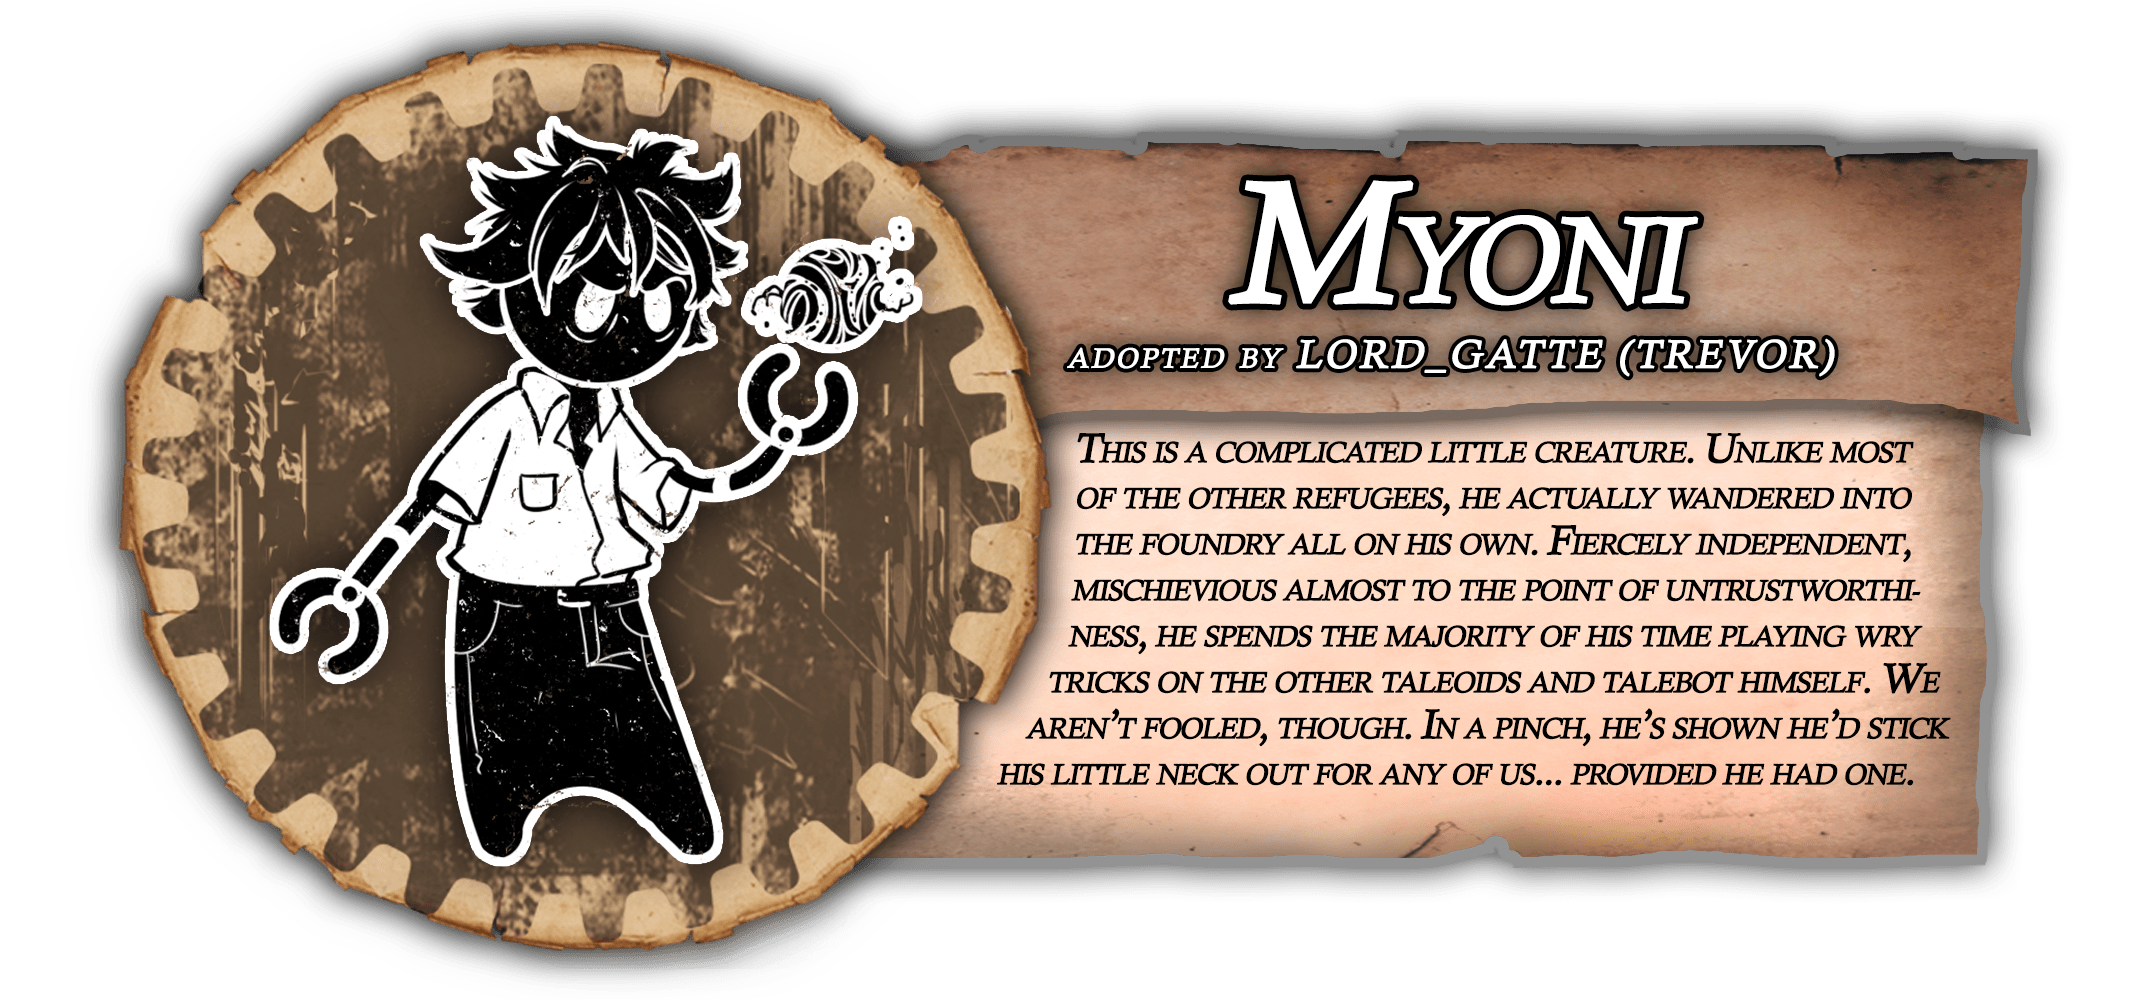 Lord_Gatte_Myoni_TaleoidAdoption